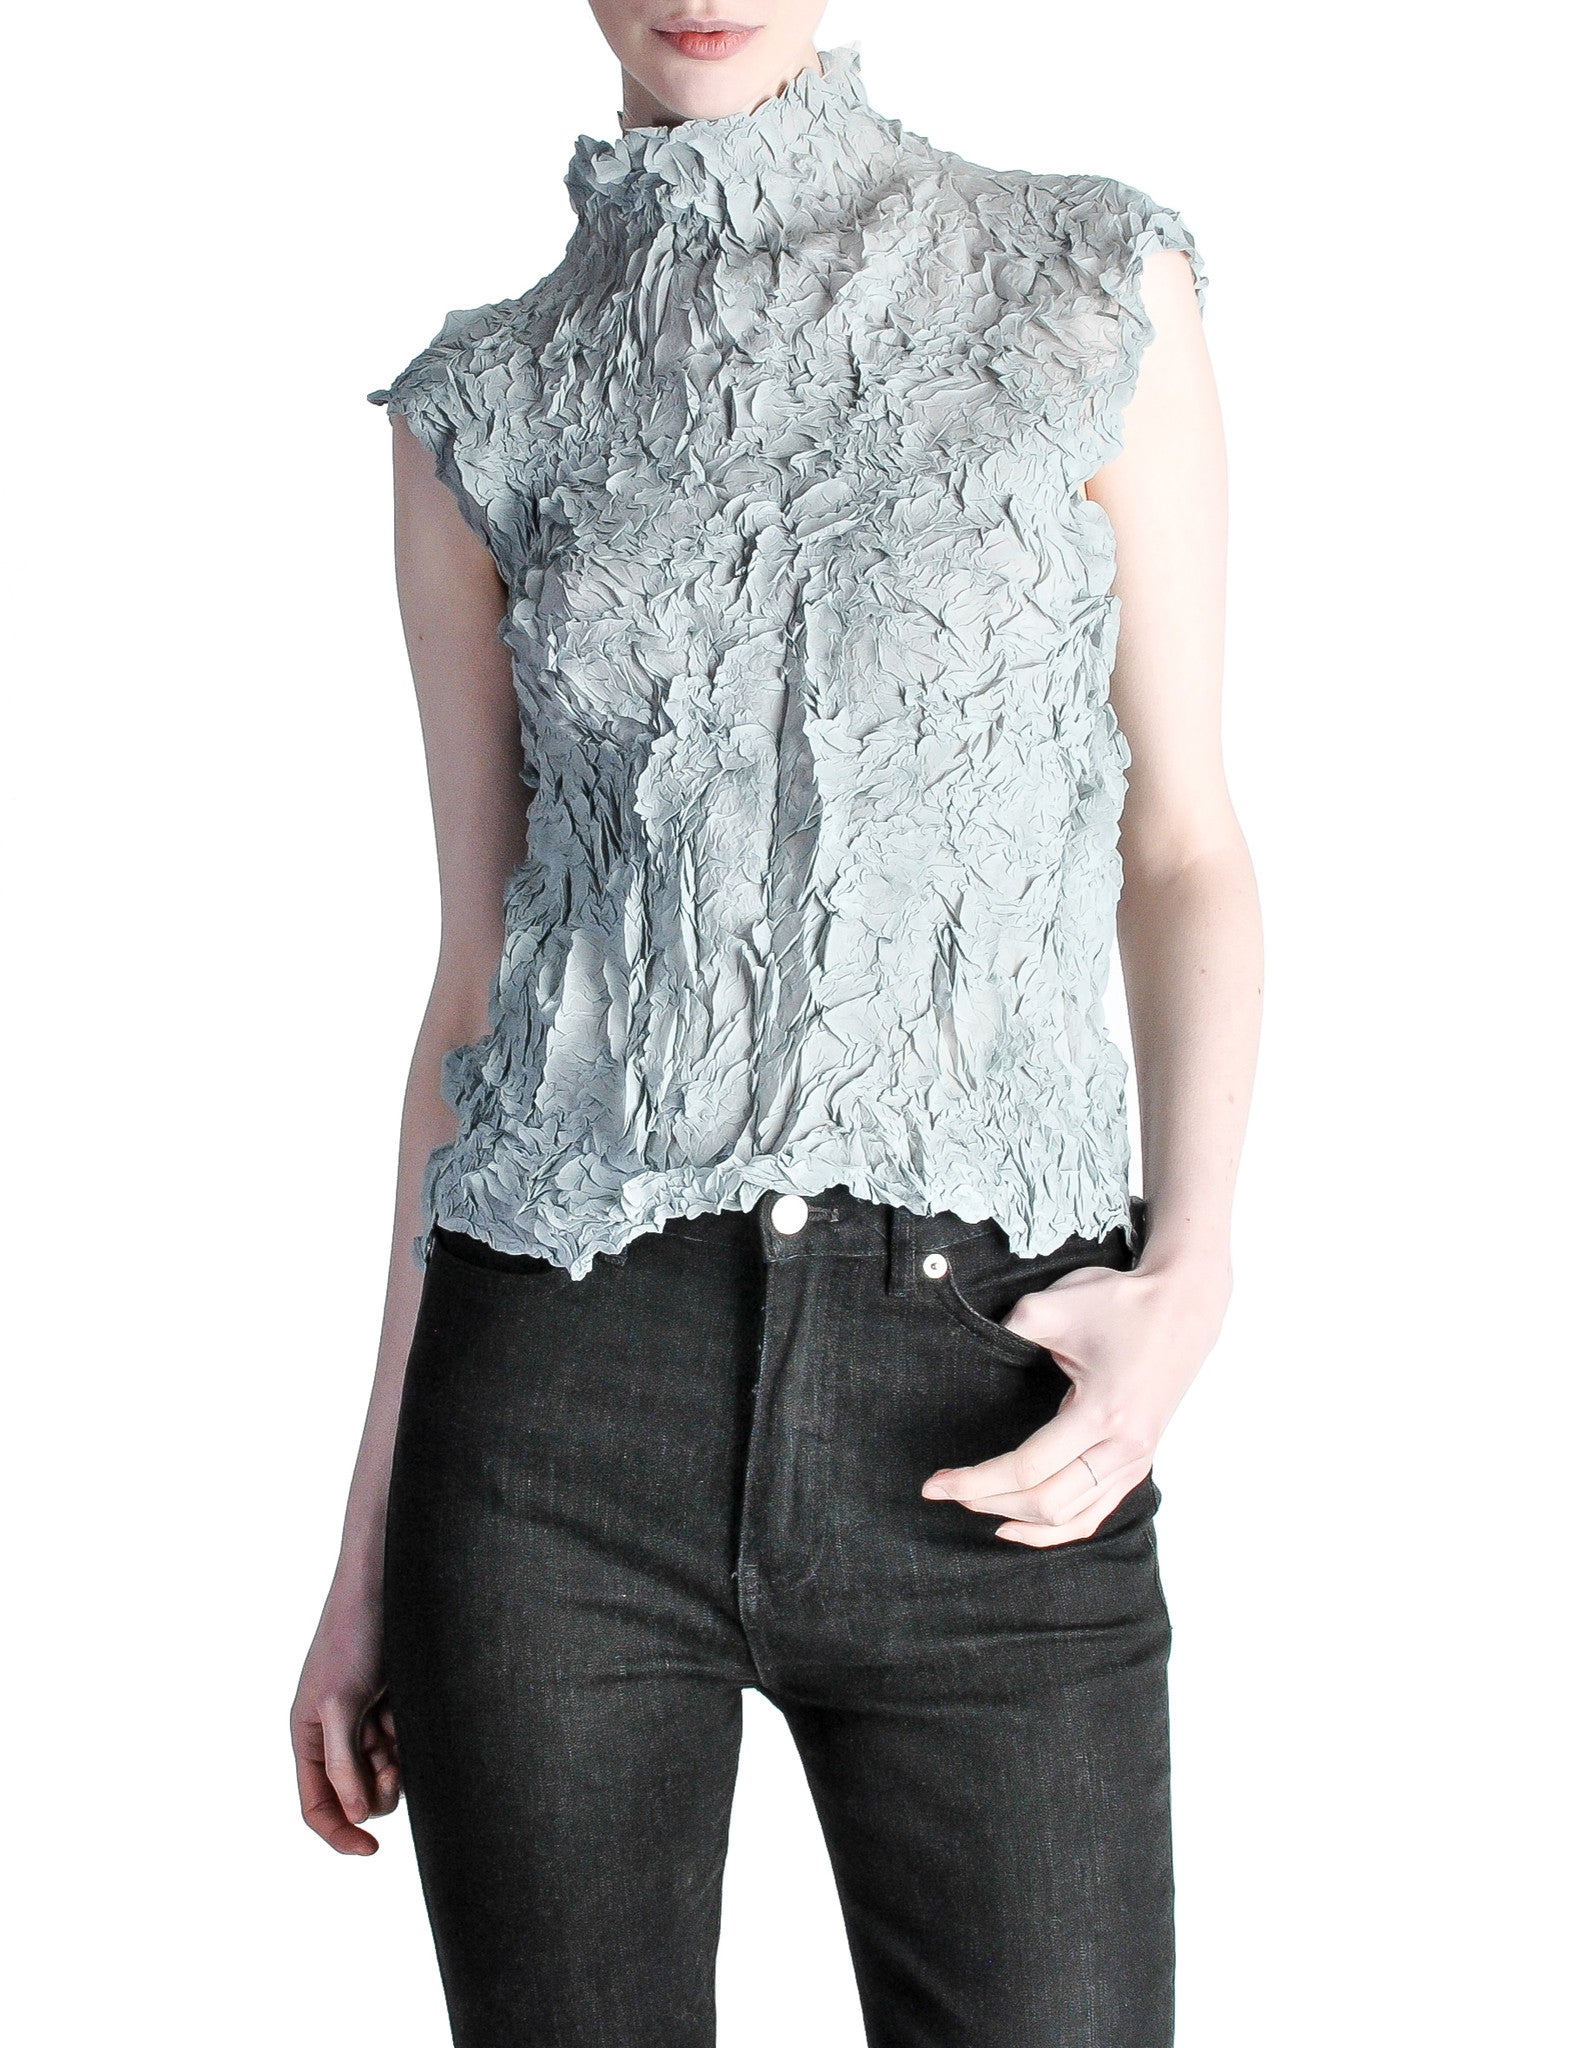 Issey Miyake Vintage Pale Blue Crinkle Pleat Top - Amarcord Vintage Fashion  - 1